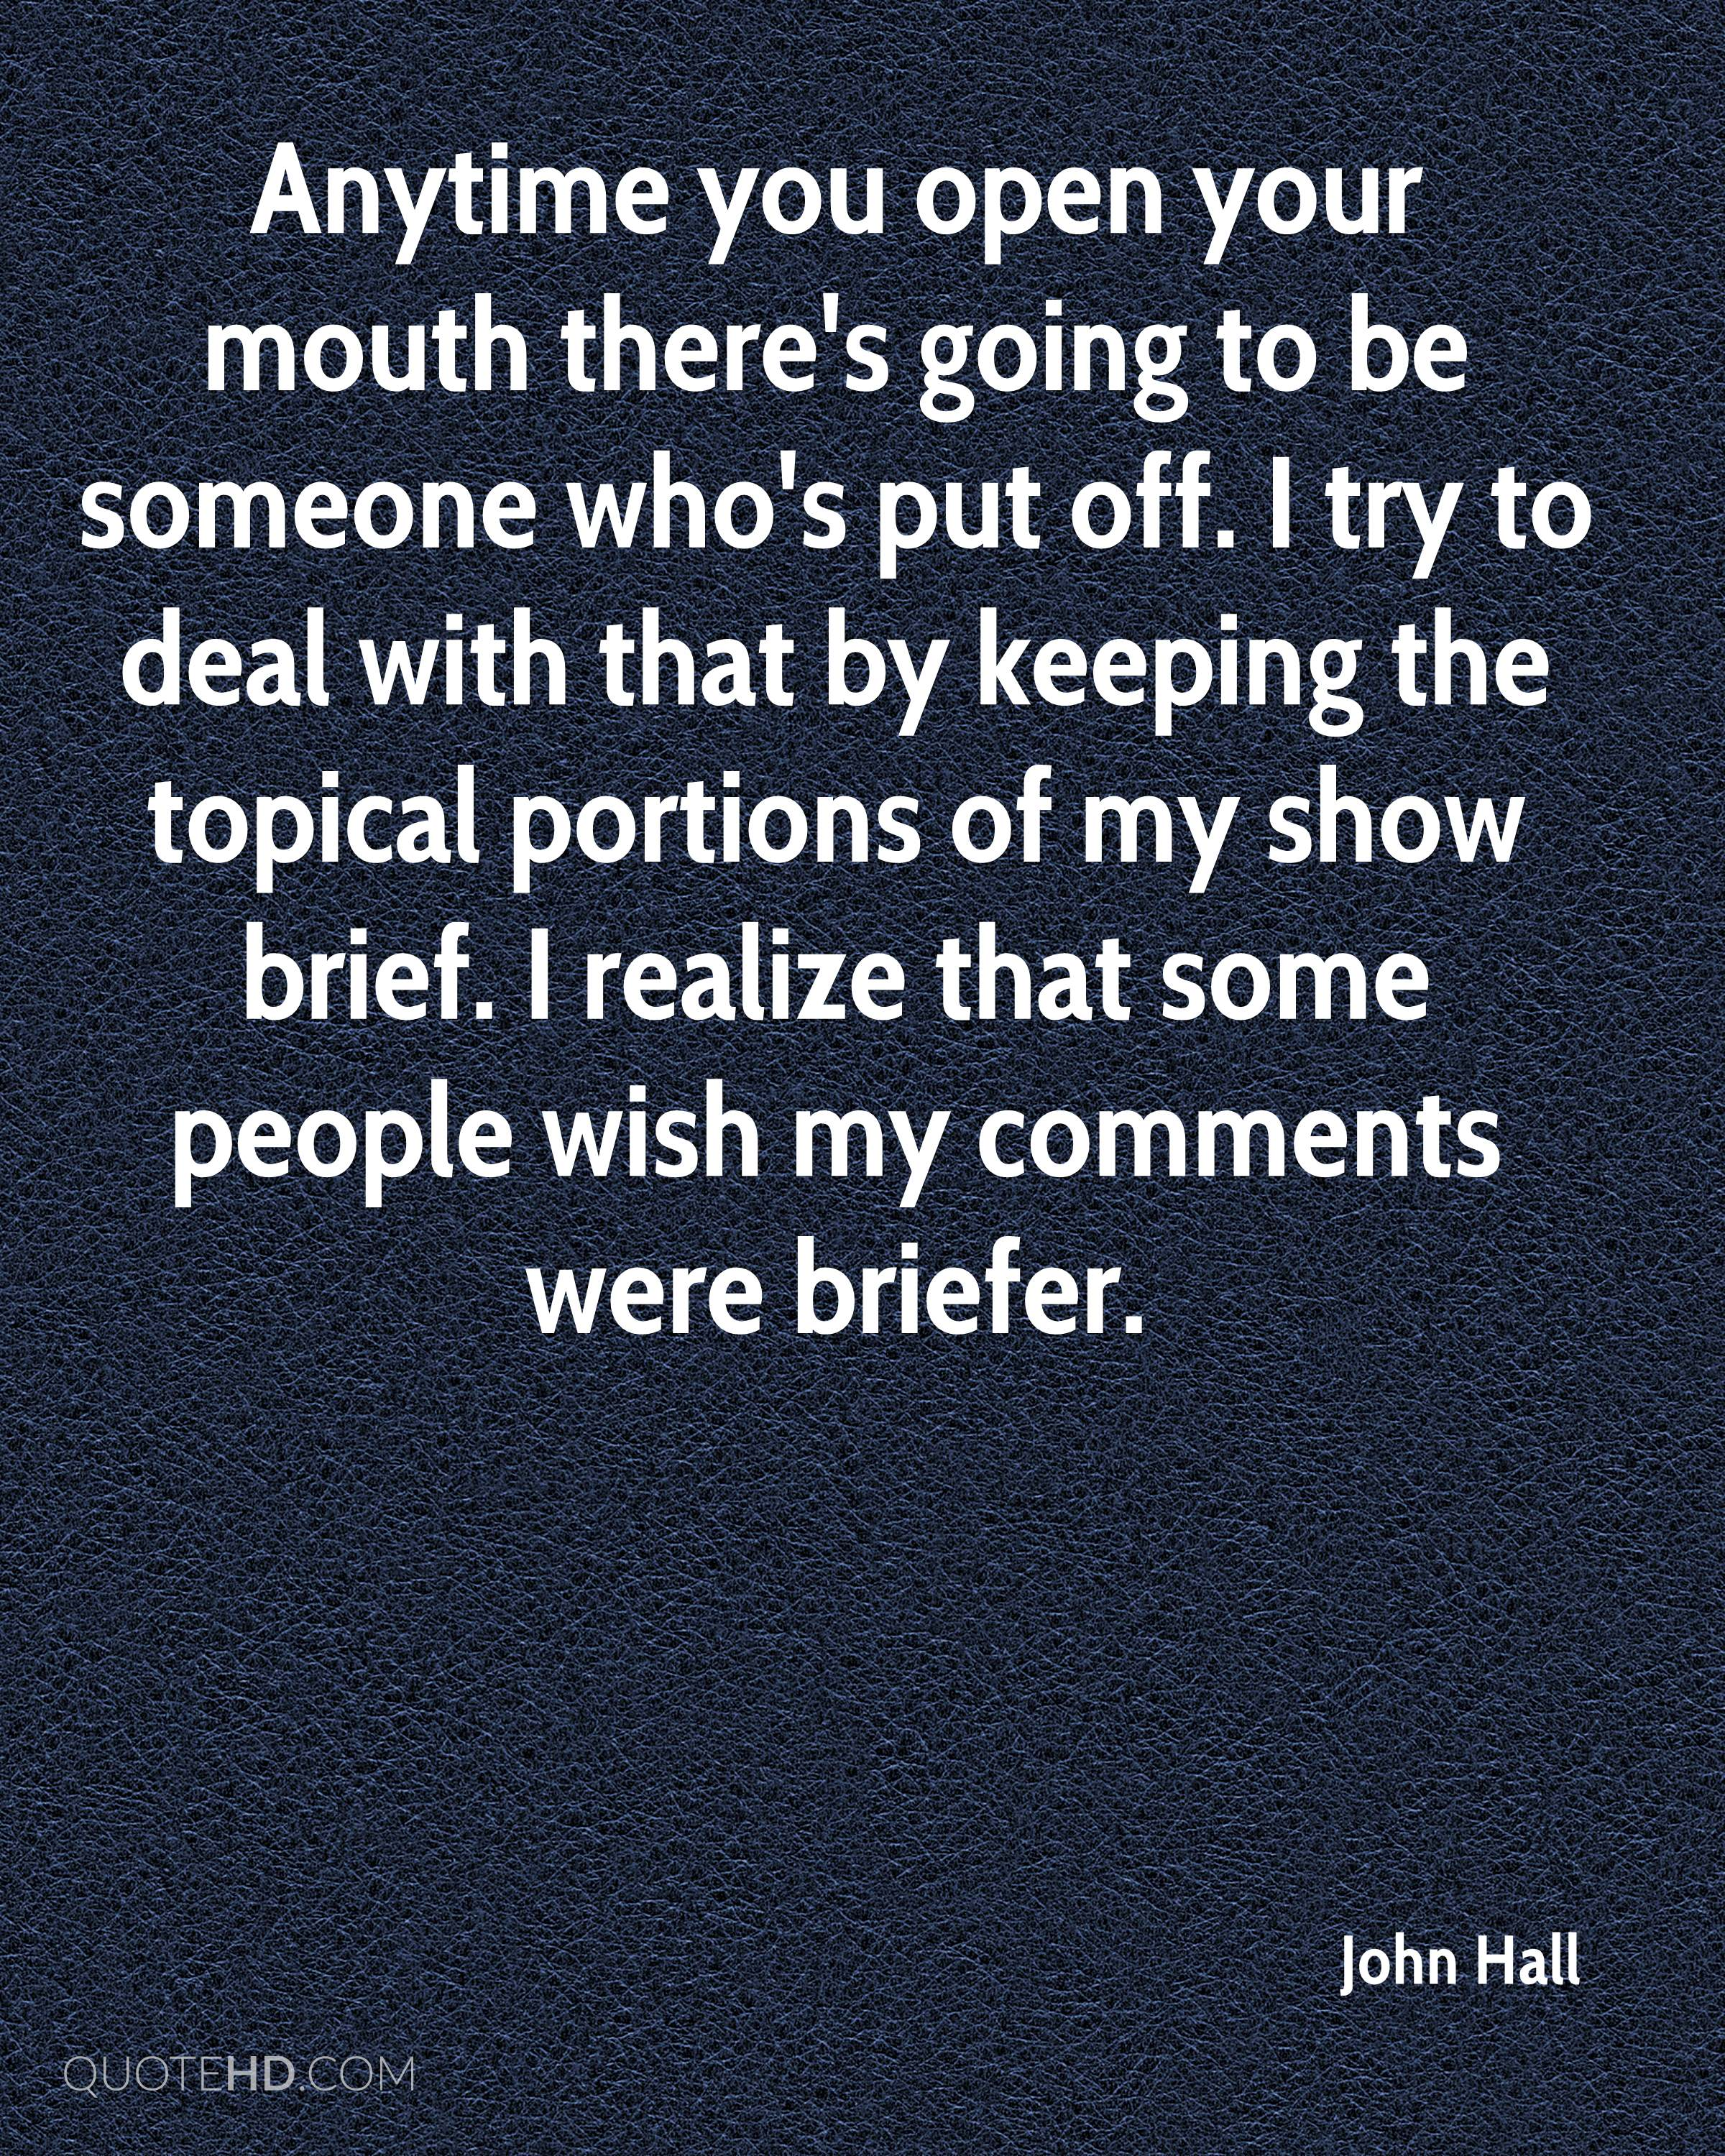 Anytime you open your mouth there's going to be someone who's put off. I try to deal with that by keeping the topical portions of my show brief. I realize that some people wish my comments were briefer.